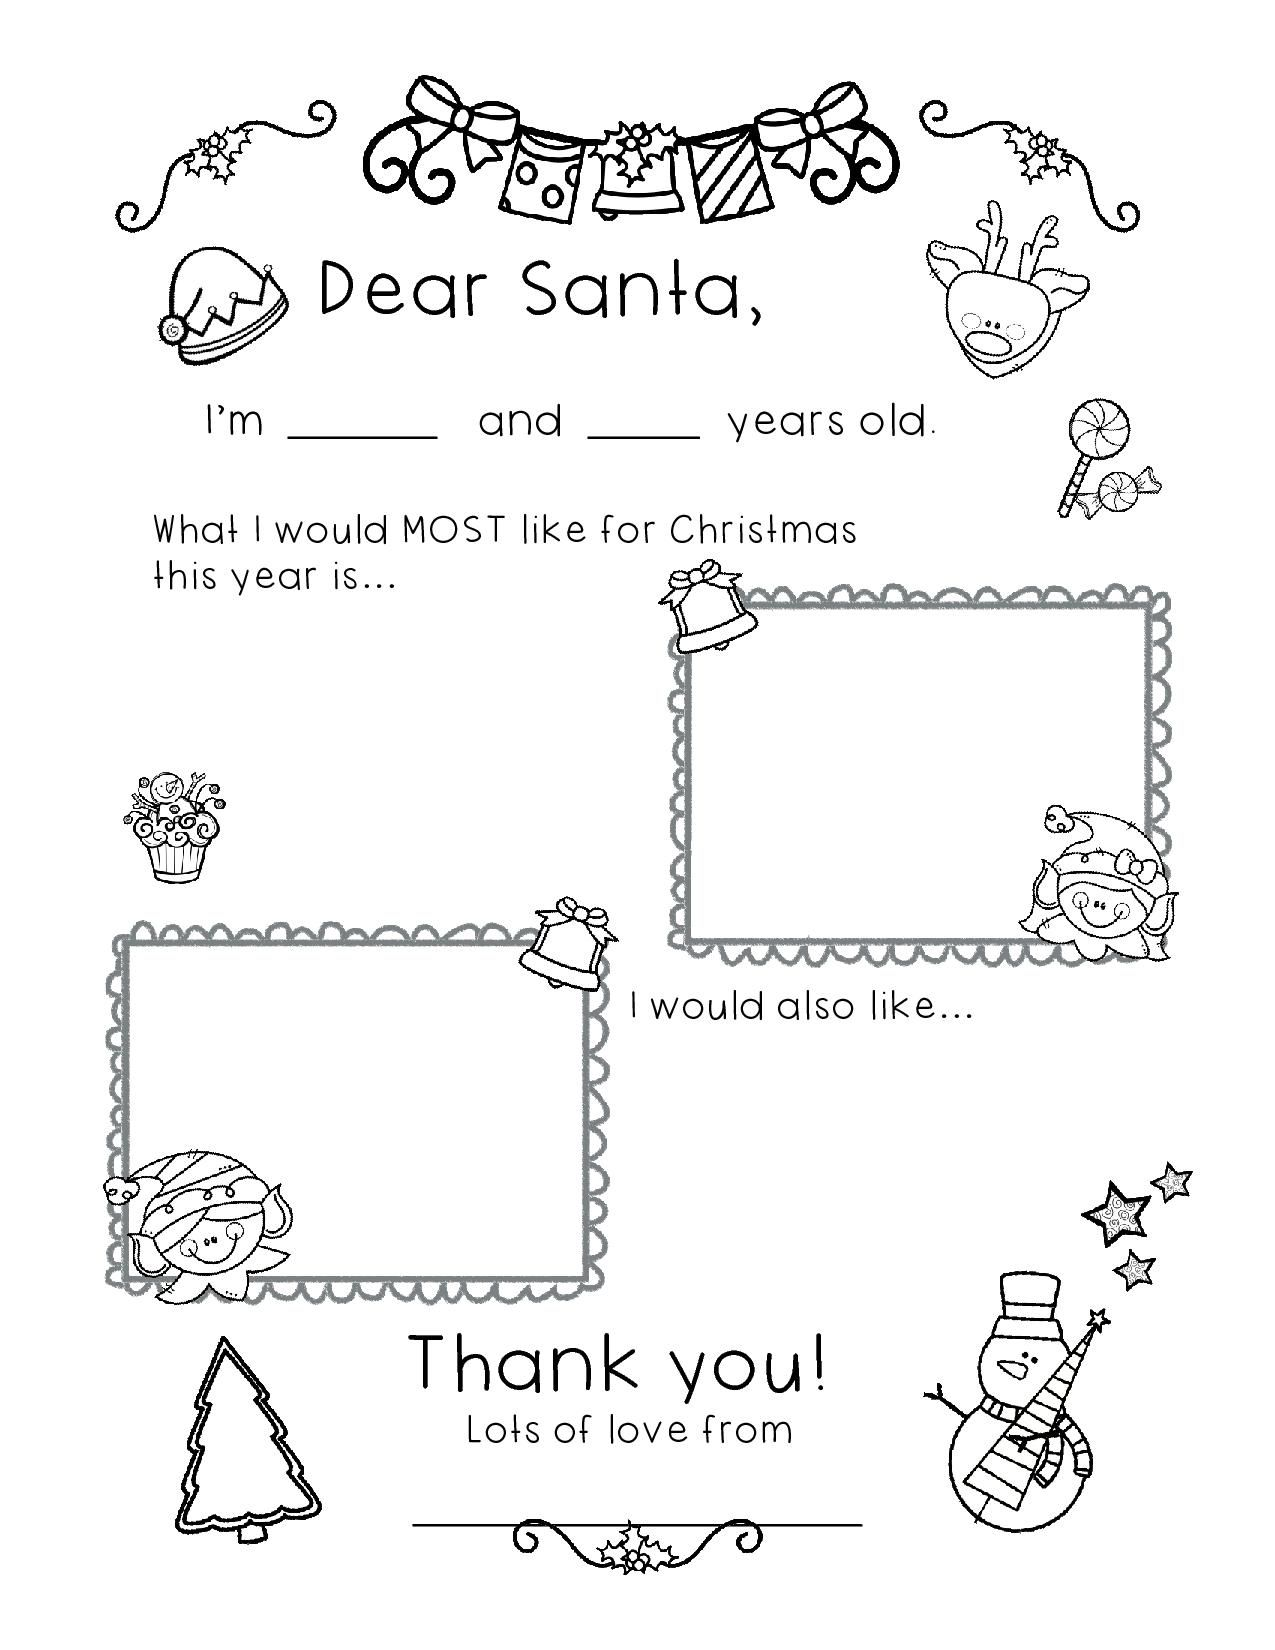 Free Dear Santa Letter With Images